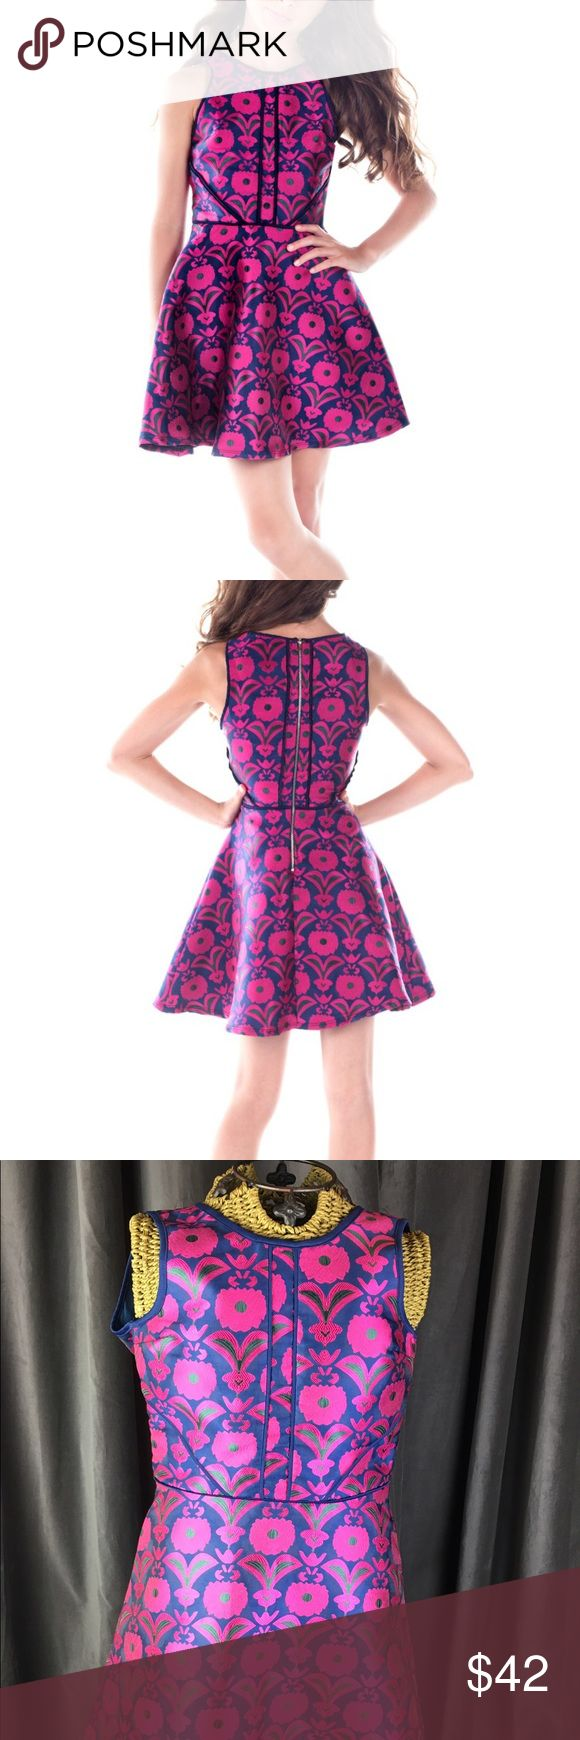 Miss Behave Dress The Kate Print Jacquard XL/14 Miss Behave  The Kate Print Jacquard  Size Big girls size XL (14) teen Juniors Beautiful print with vibrant colors  Measurements are taken flat and are approximate. Please compare to your own clothing to insure fit  • 31 inches total length  • 15 inches width armpit to armpit  • 13 inches width at waist miss behave girls  Dresses Formal